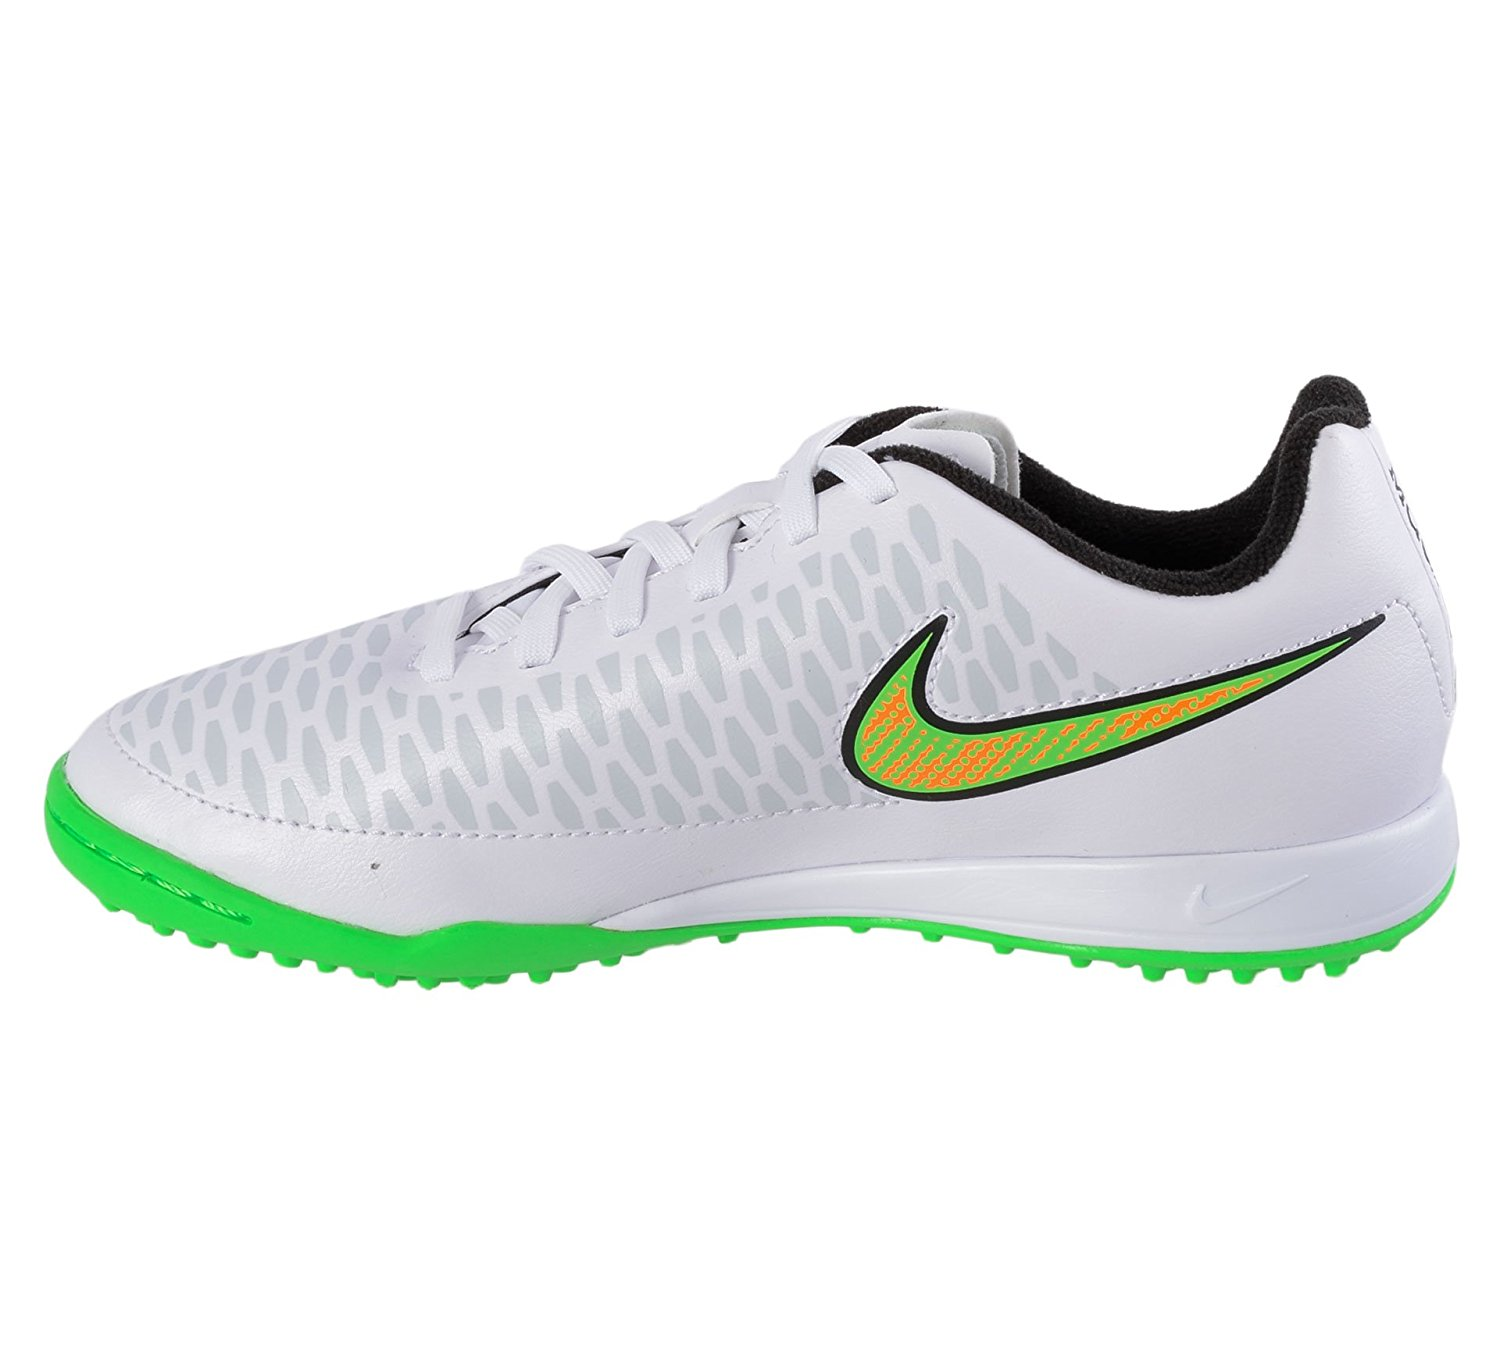 promo code 7617d 5647b Get Quotations · Nike Junior Magista Onda TF Football Shoes